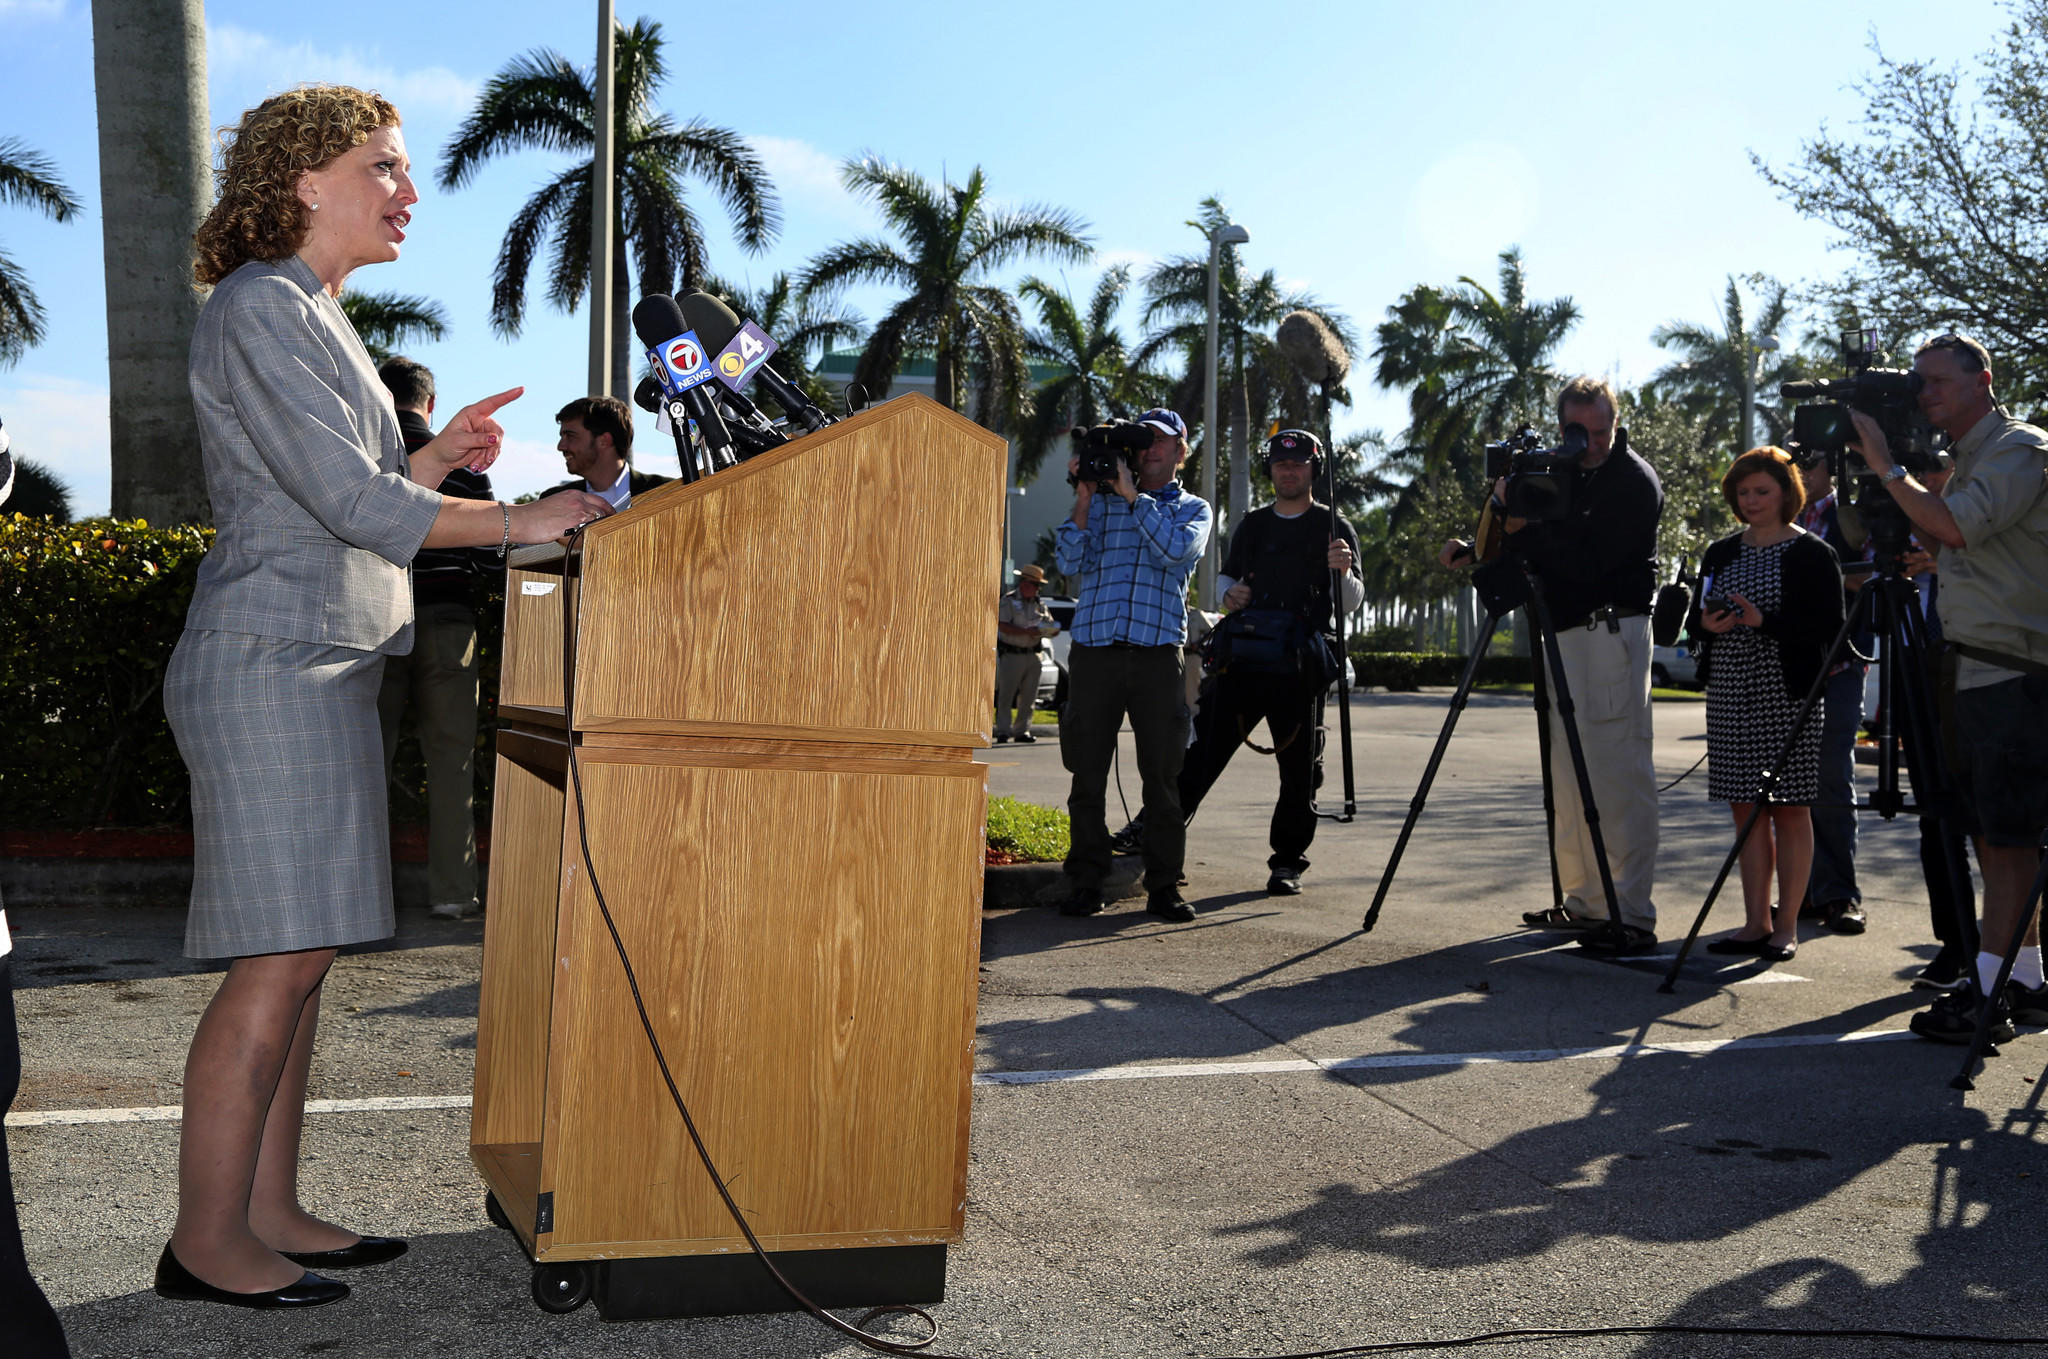 DNC Chair Debbie Wasserman Schultz and Florida Democratic Party Officials held a press event in Dania Beach on Saturday afternoon to respond to New Jersey Gov. Chris Christies Florida trip and to discuss Gov. Rick Scotts failed record. Mike Stocker, Sun Sentinel